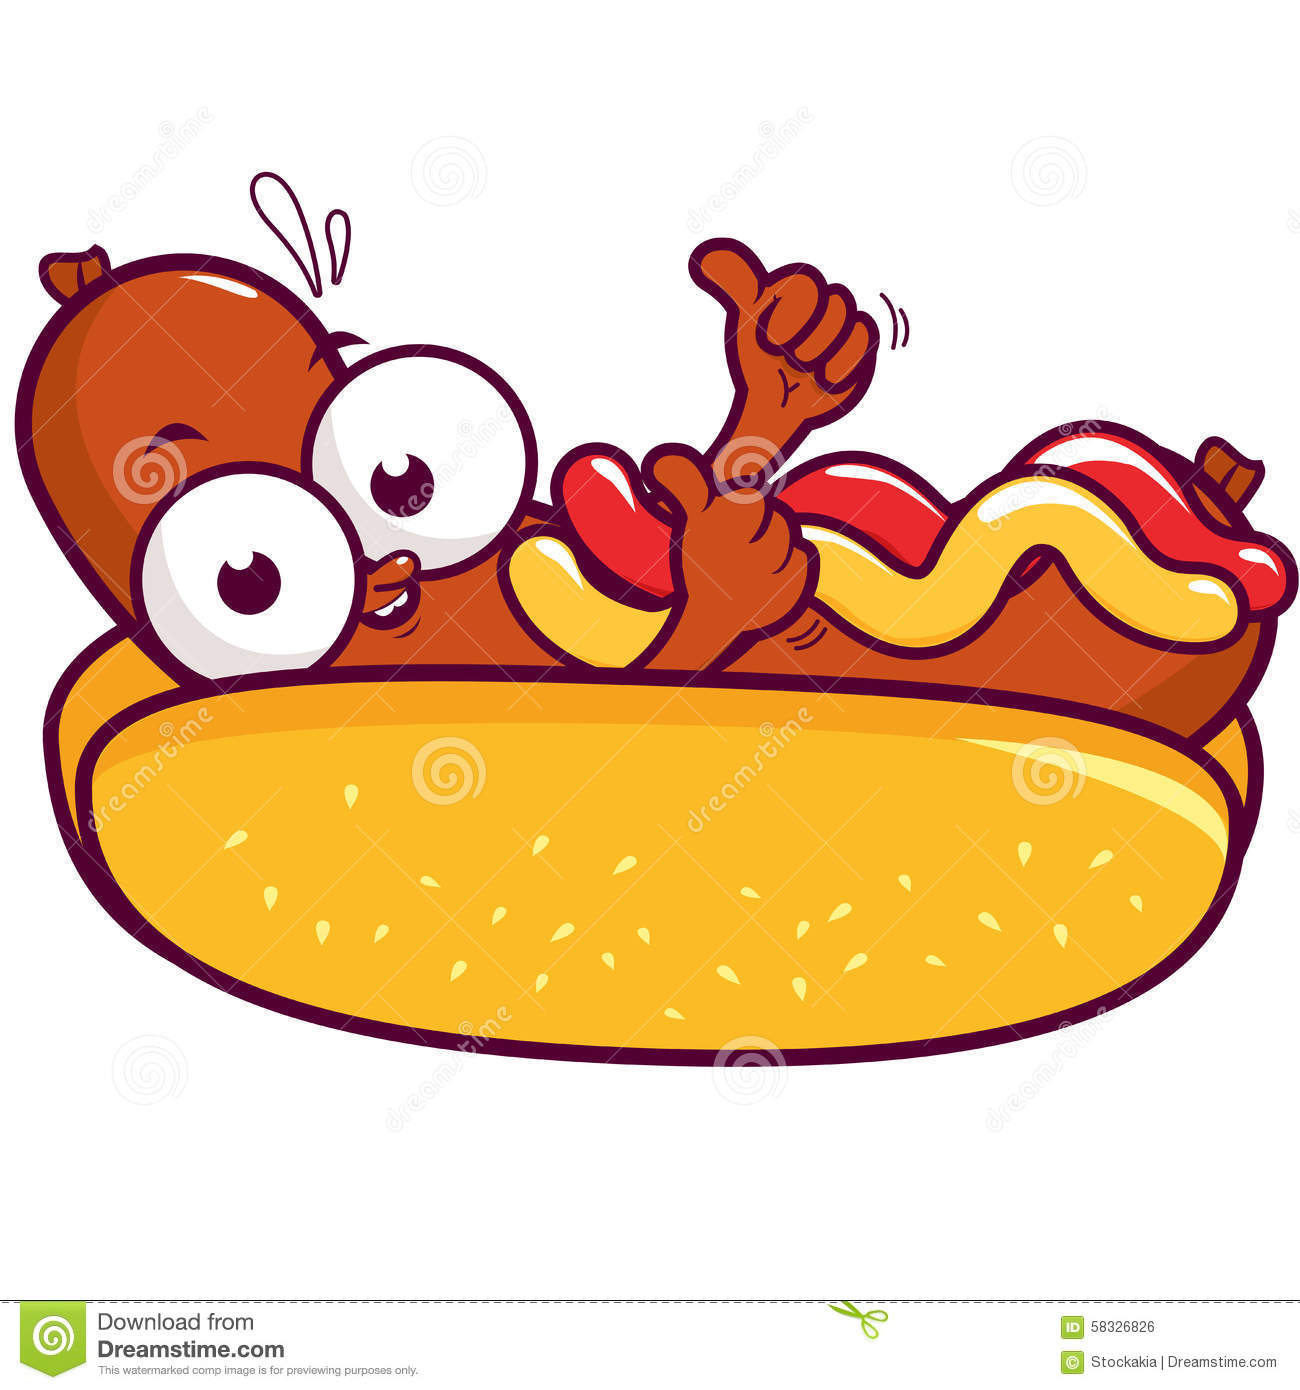 Bacon Hot Dogs in addition Ilustra C3 A7 C3 A3o Stock Cachorro Quente Dos Desenhos Animados Image58326826 additionally How To Make A Million Dollars With A Hot Dog Cart furthermore Royalty Free Stock Photos Smiling Little Girl Look Out Baldachin Standing All Fours Image32224348 in addition Dancing Hot Dog Clipart. on weiner food